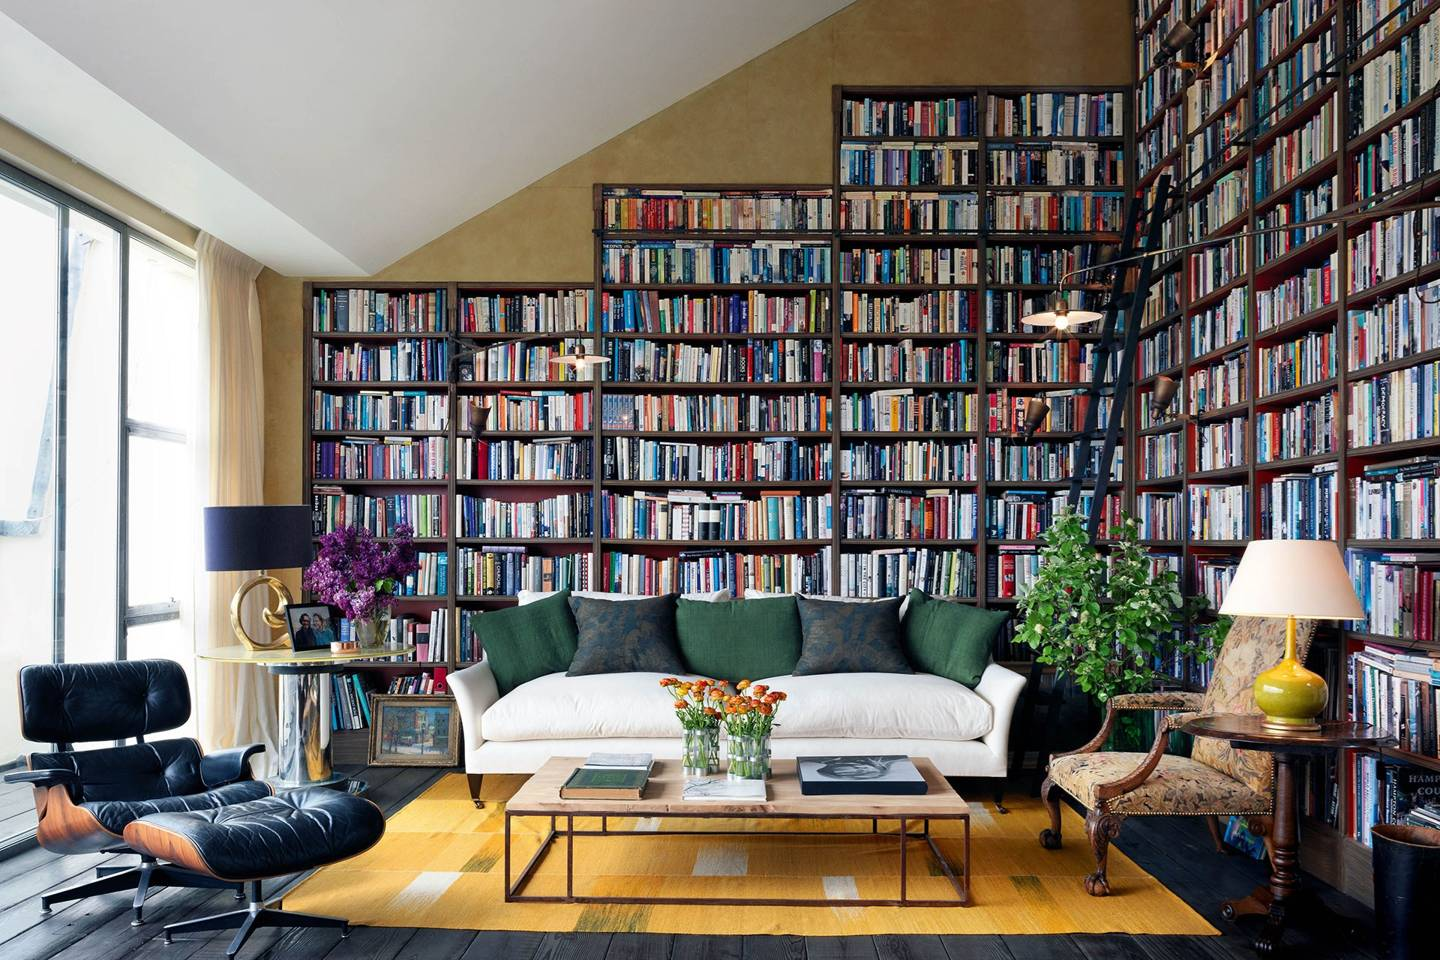 ceiling high book cases in living room